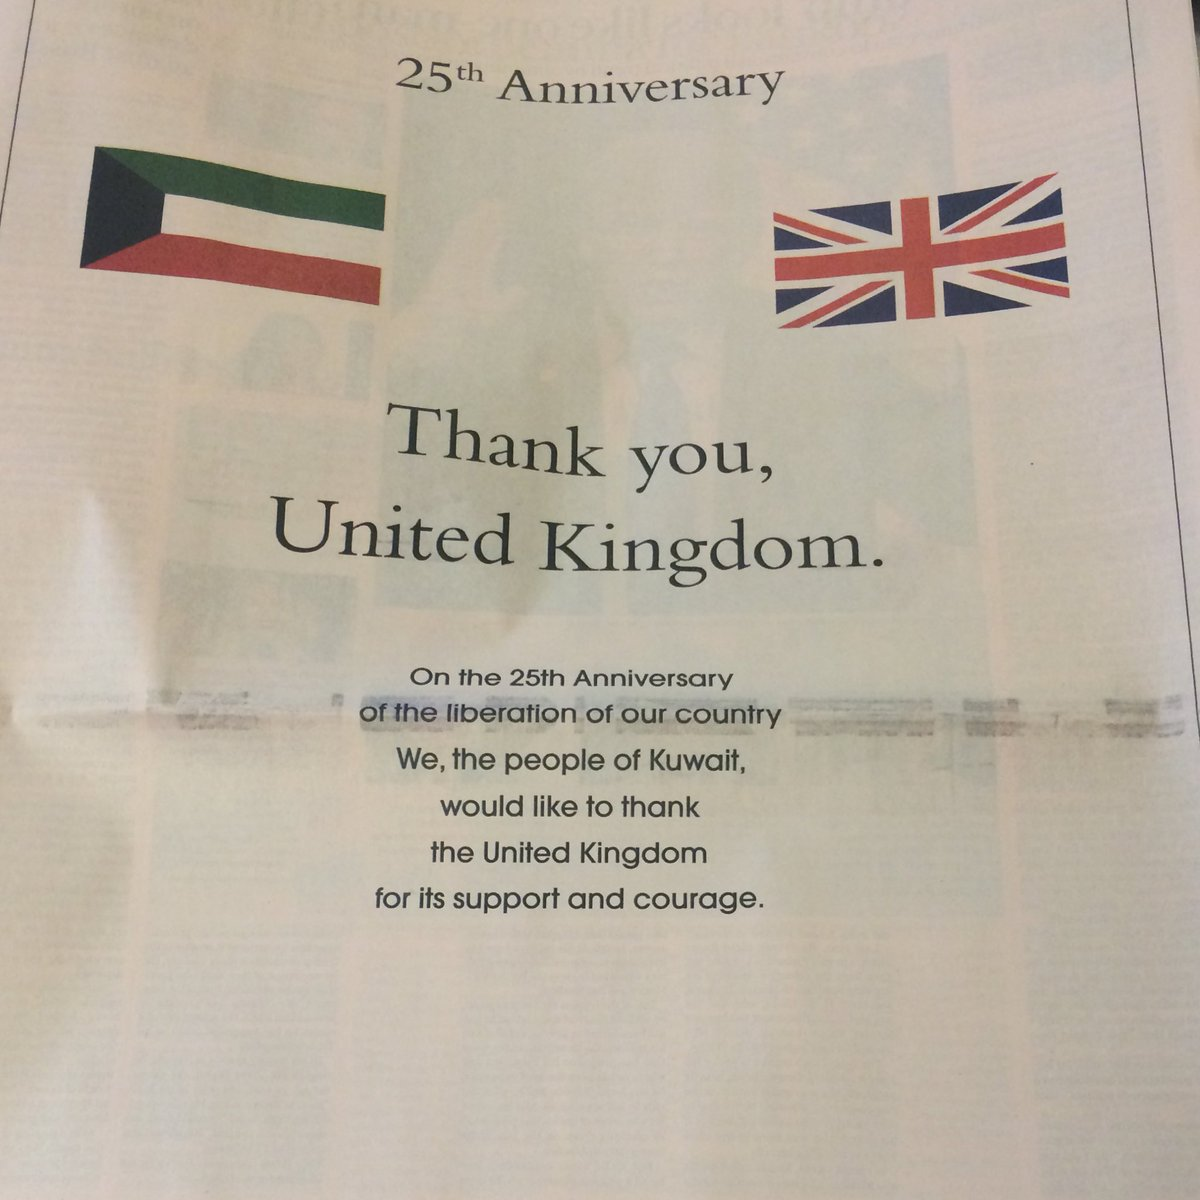 It's 25 years since First Gulf War, and the Kuwaiti Embassy have taken out a full page ad in the FT to say thanks https://t.co/wHWYFTpWaT